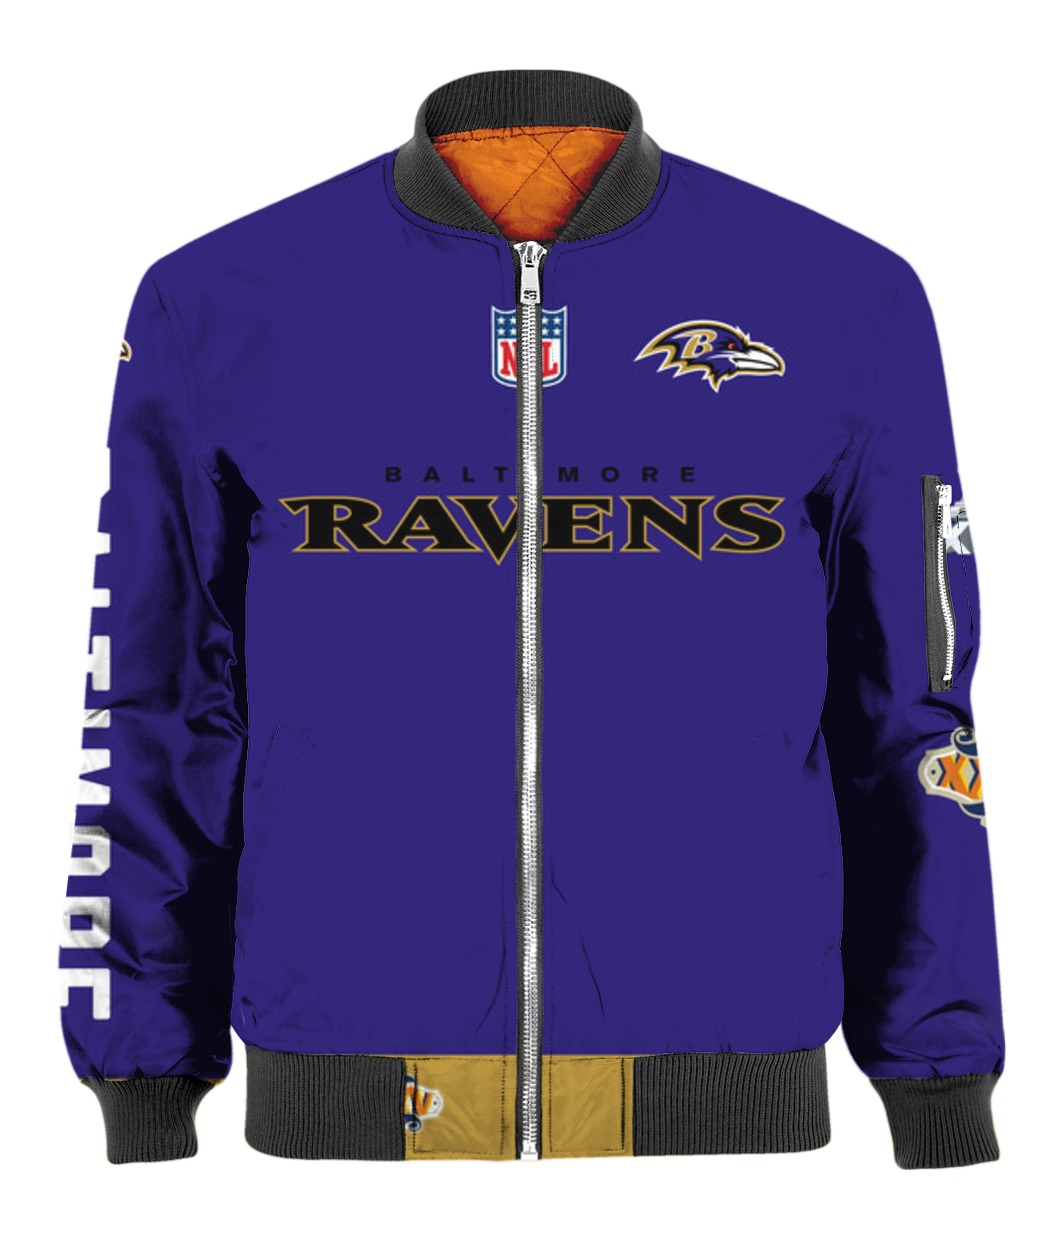 Stand for the flag kneel for the cross baltimore ravens all over print bomber